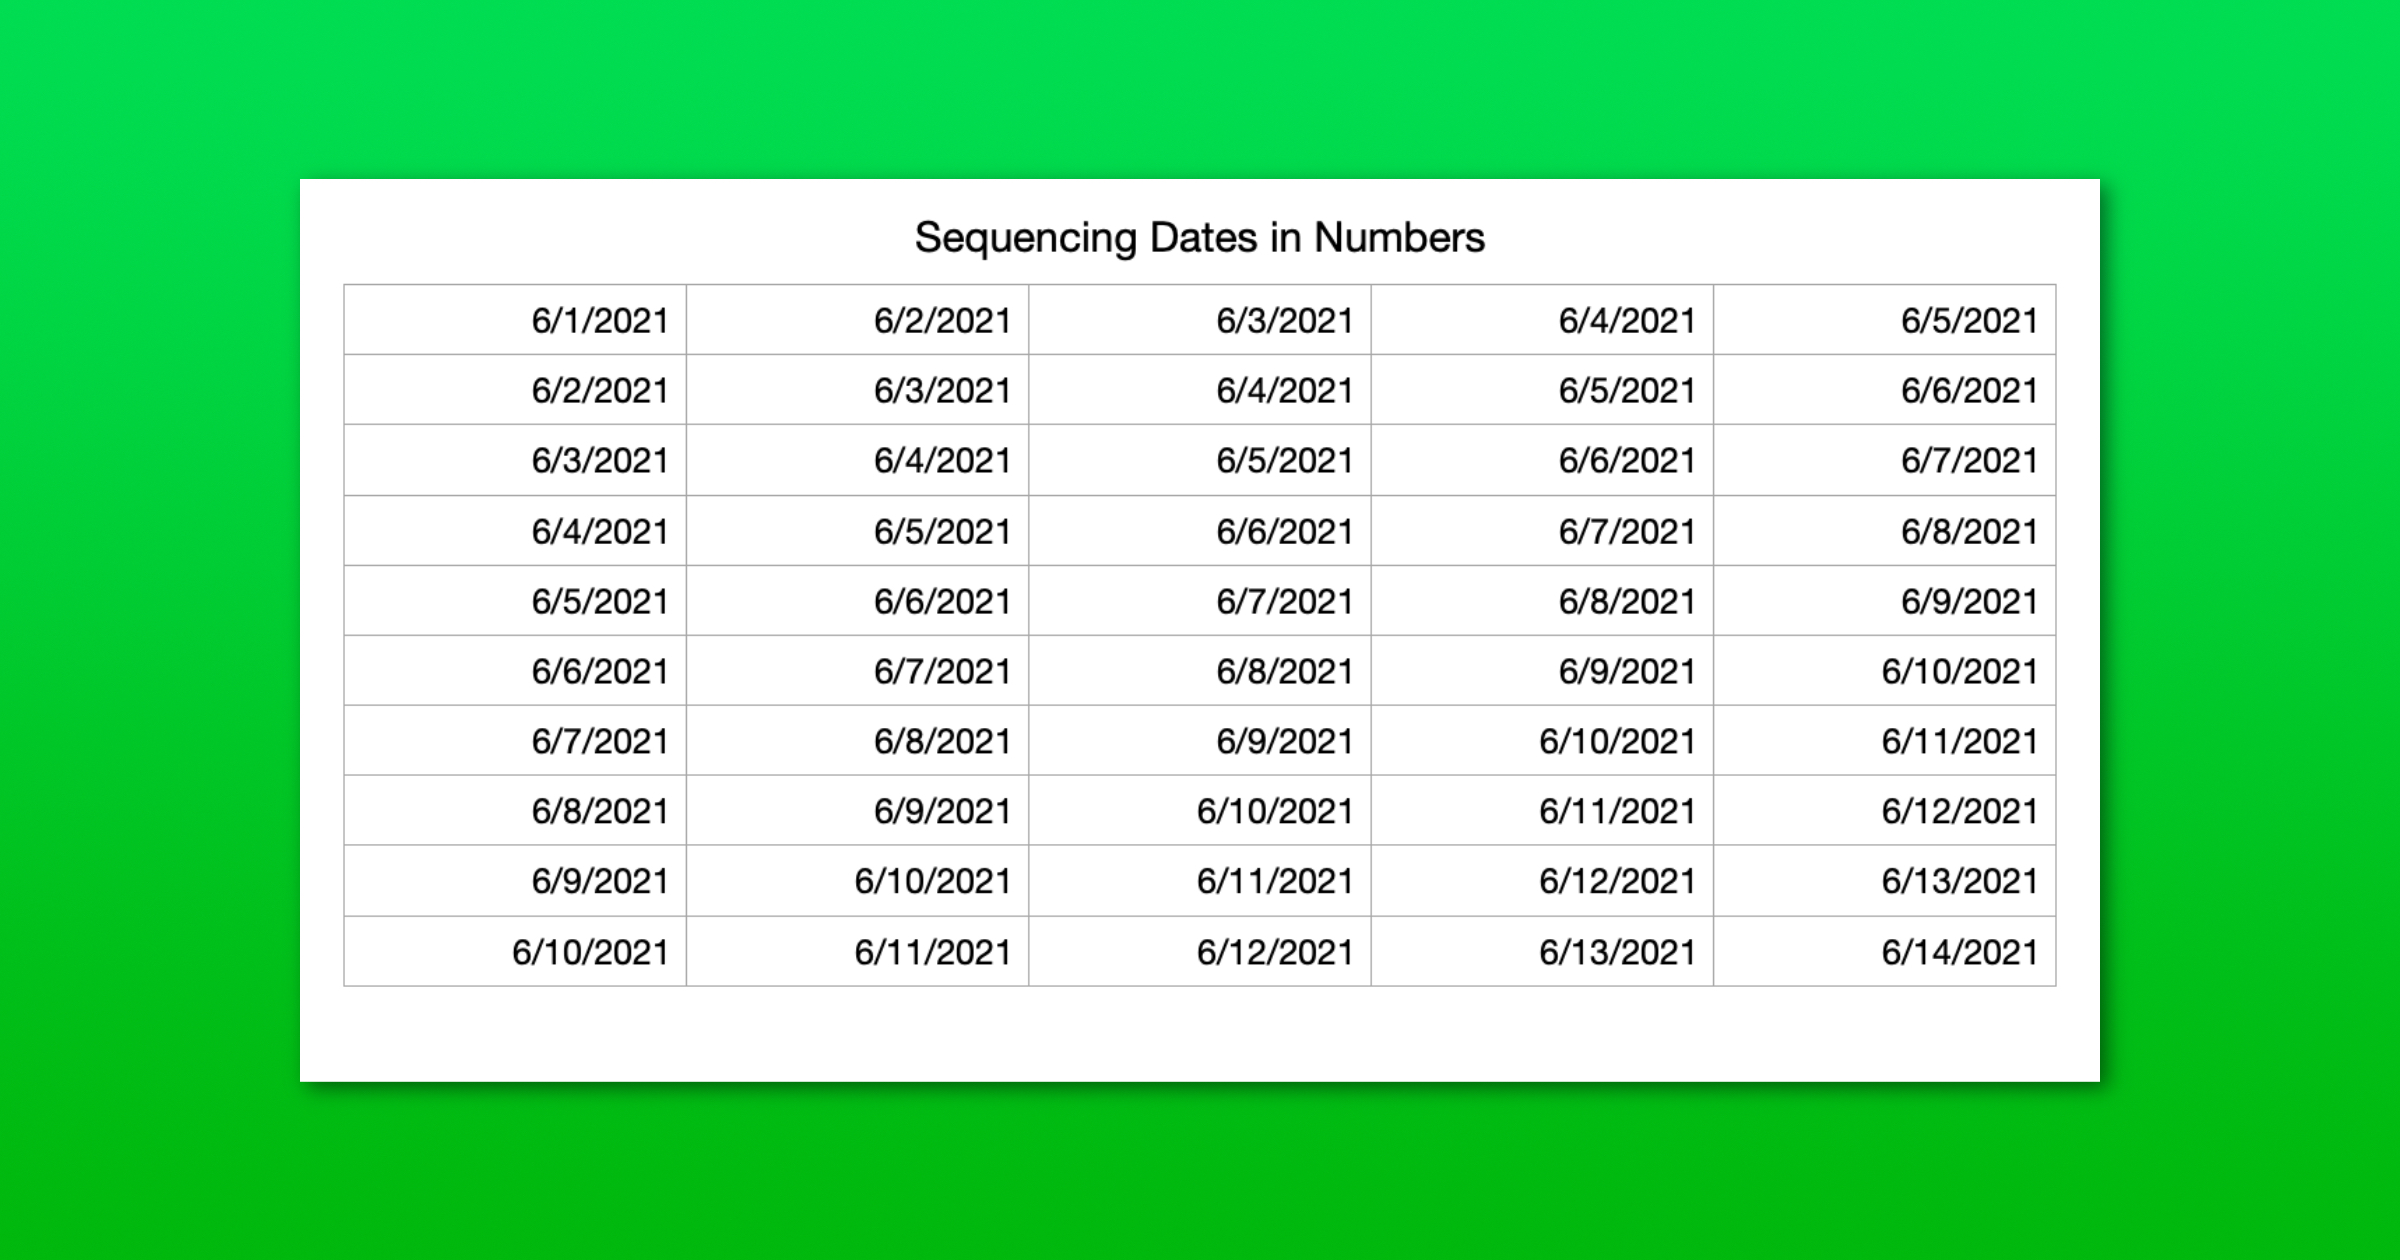 sequencing dates in numbers